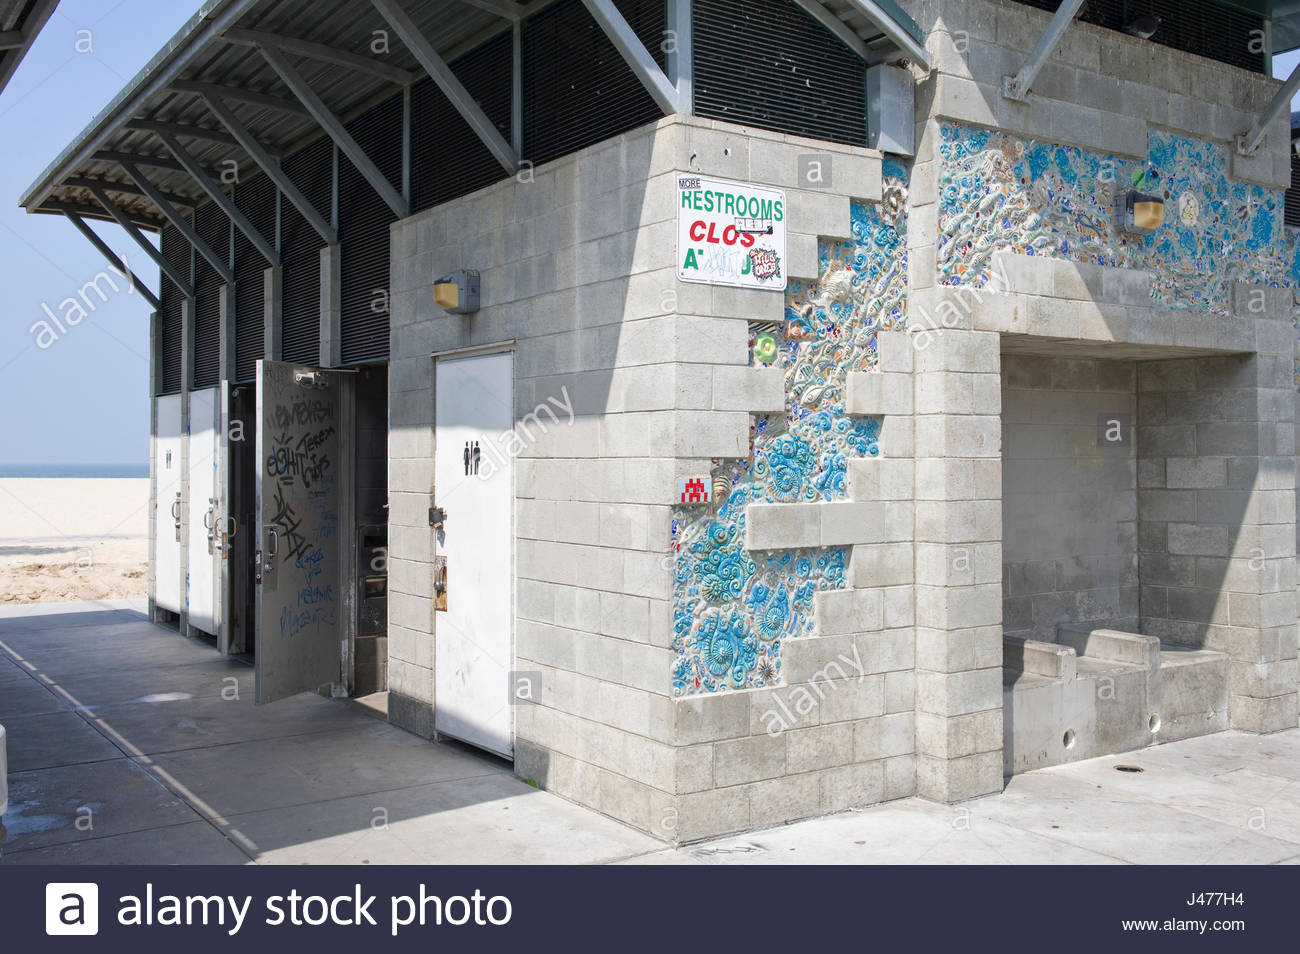 Public Bathrooms Immagini & Public Bathrooms Fotos Stock - Alamy